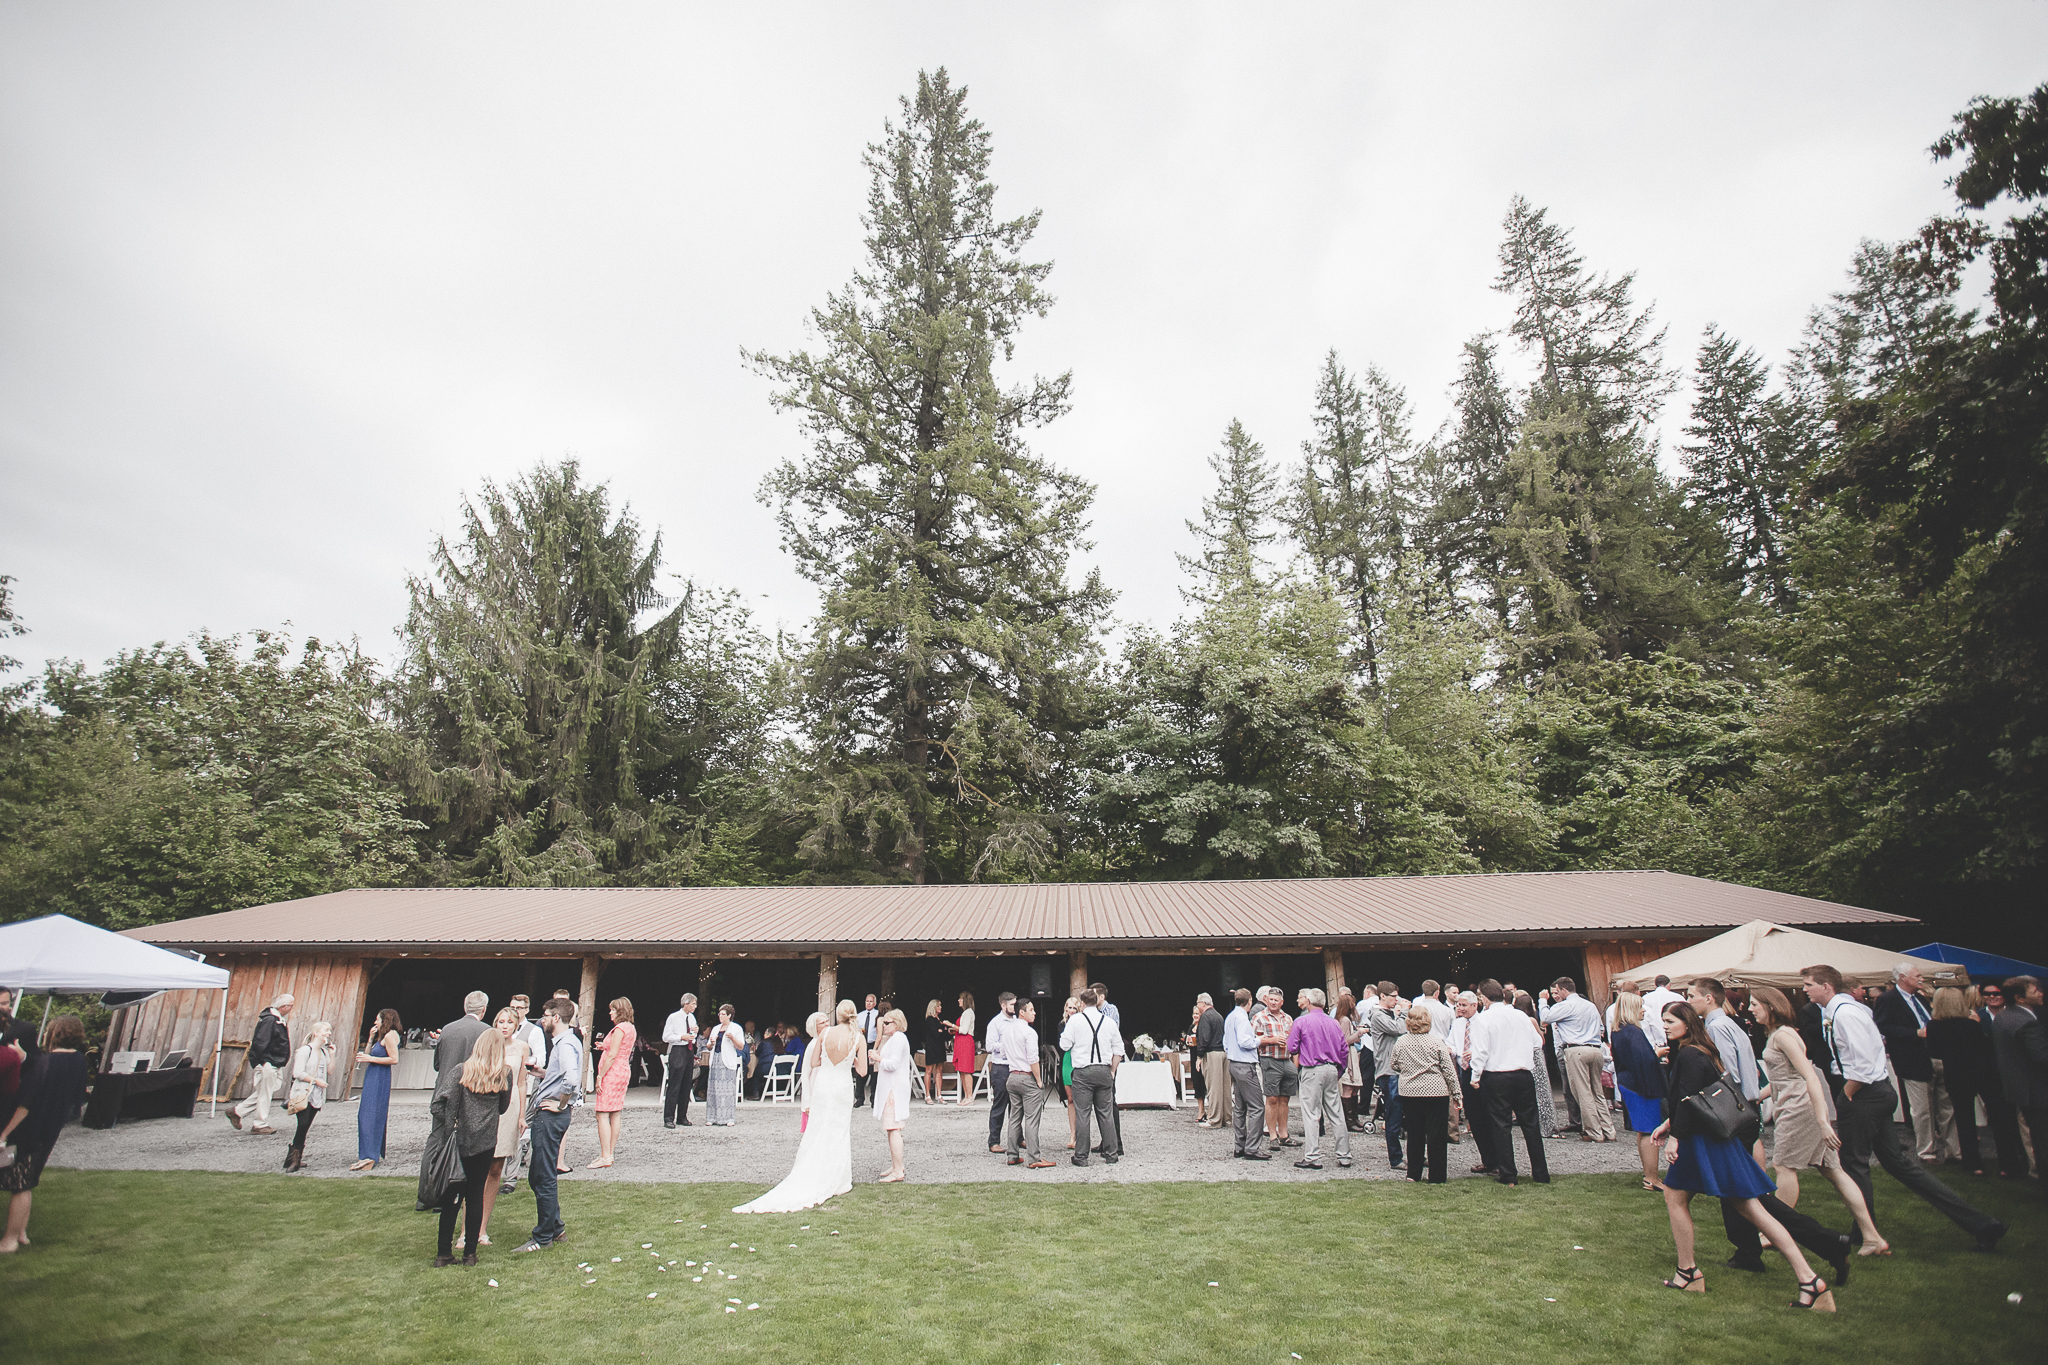 pomeroy farm portland seattle wedding photographer-31.jpg